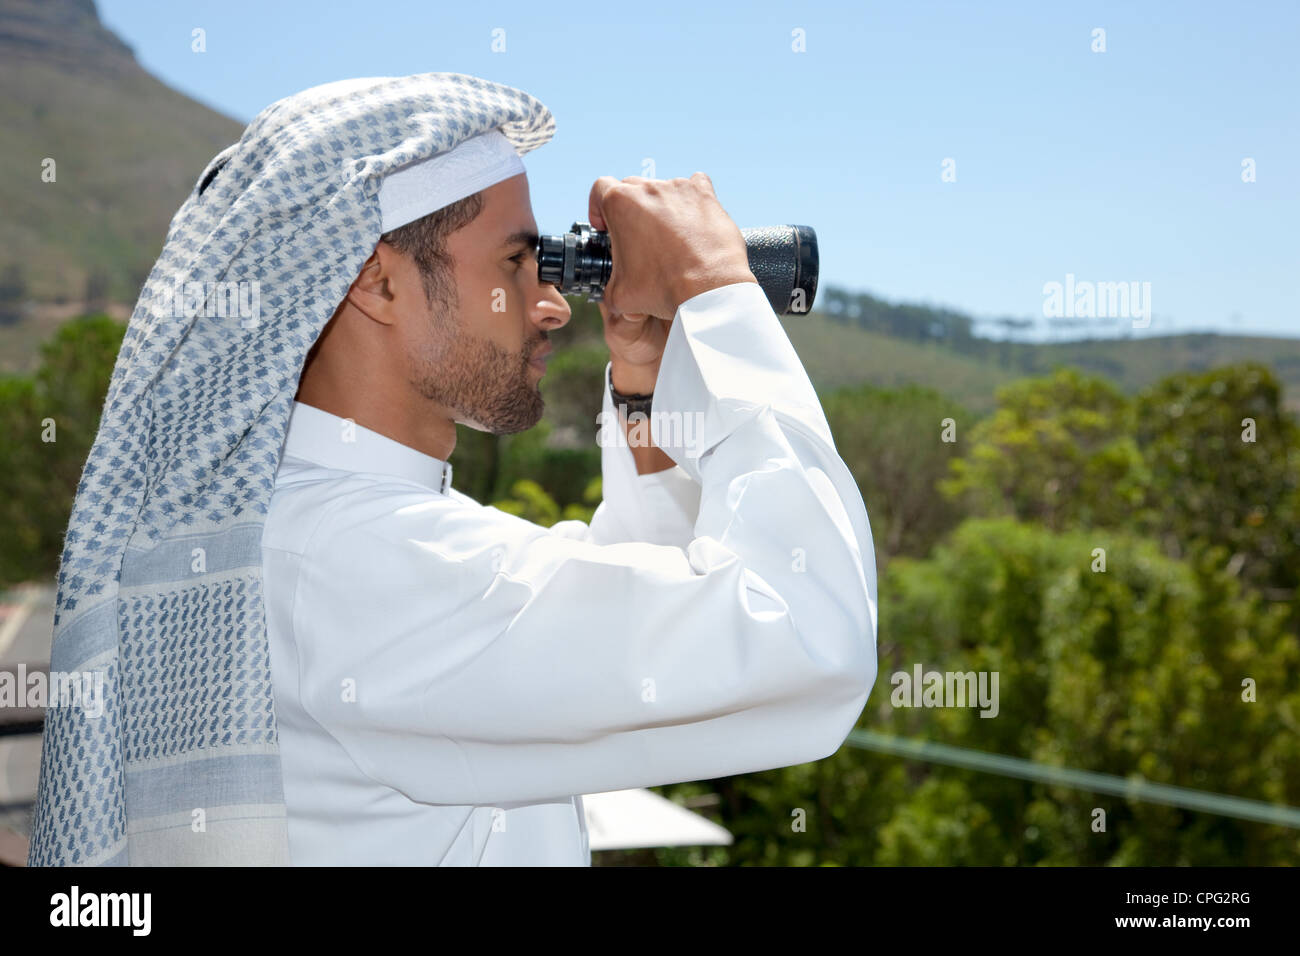 Arab man with binoculars, standing at the balcony. - Stock Image